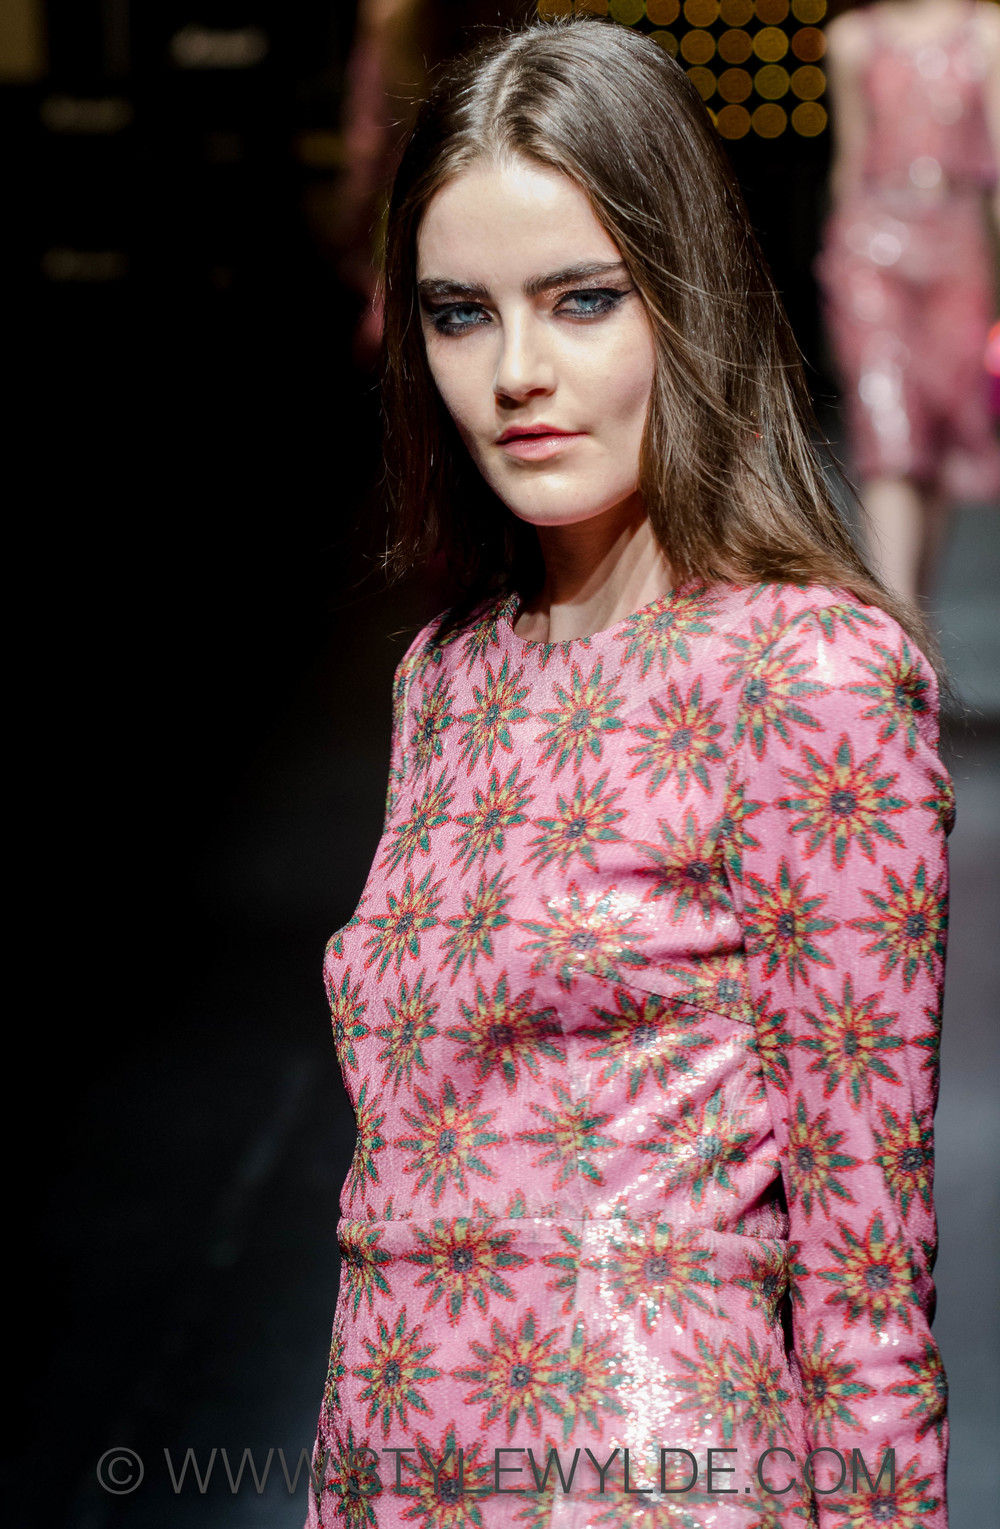 stylewylde_HouseofHolland_SS15 (32 of 68).jpg